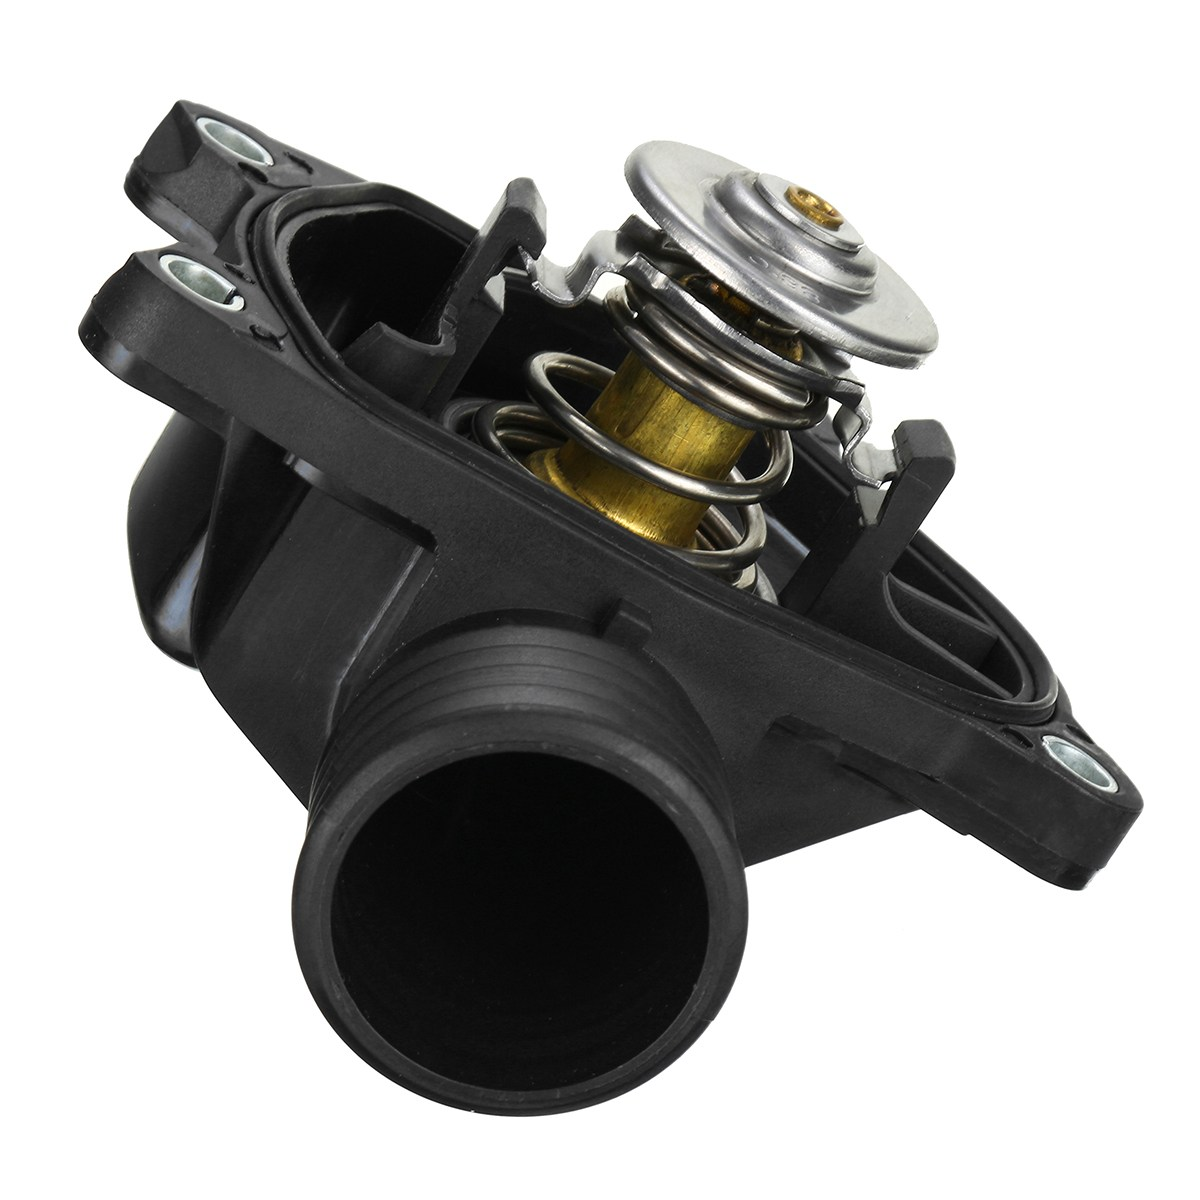 Engine Coolant Thermostat With Housing For Land Rover Freelander 2000 2001 2002 2003 2004 2006